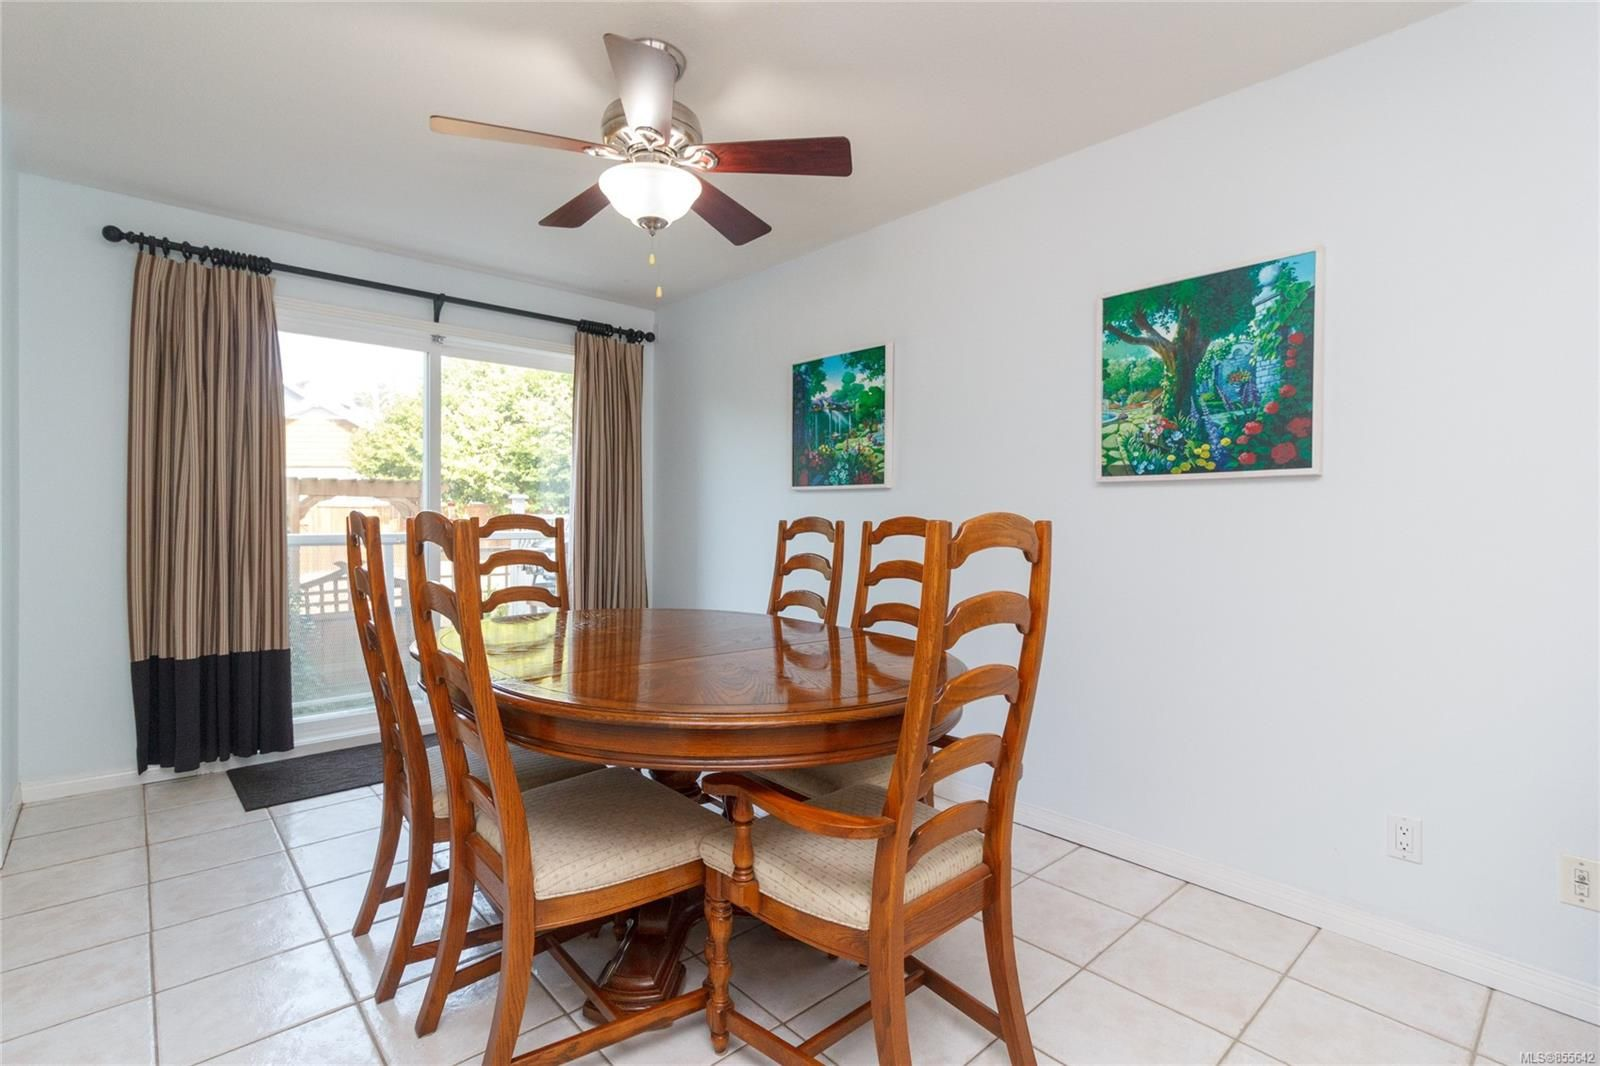 Photo 8: Photos: 52 14 Erskine Lane in : VR Hospital Row/Townhouse for sale (View Royal)  : MLS®# 855642